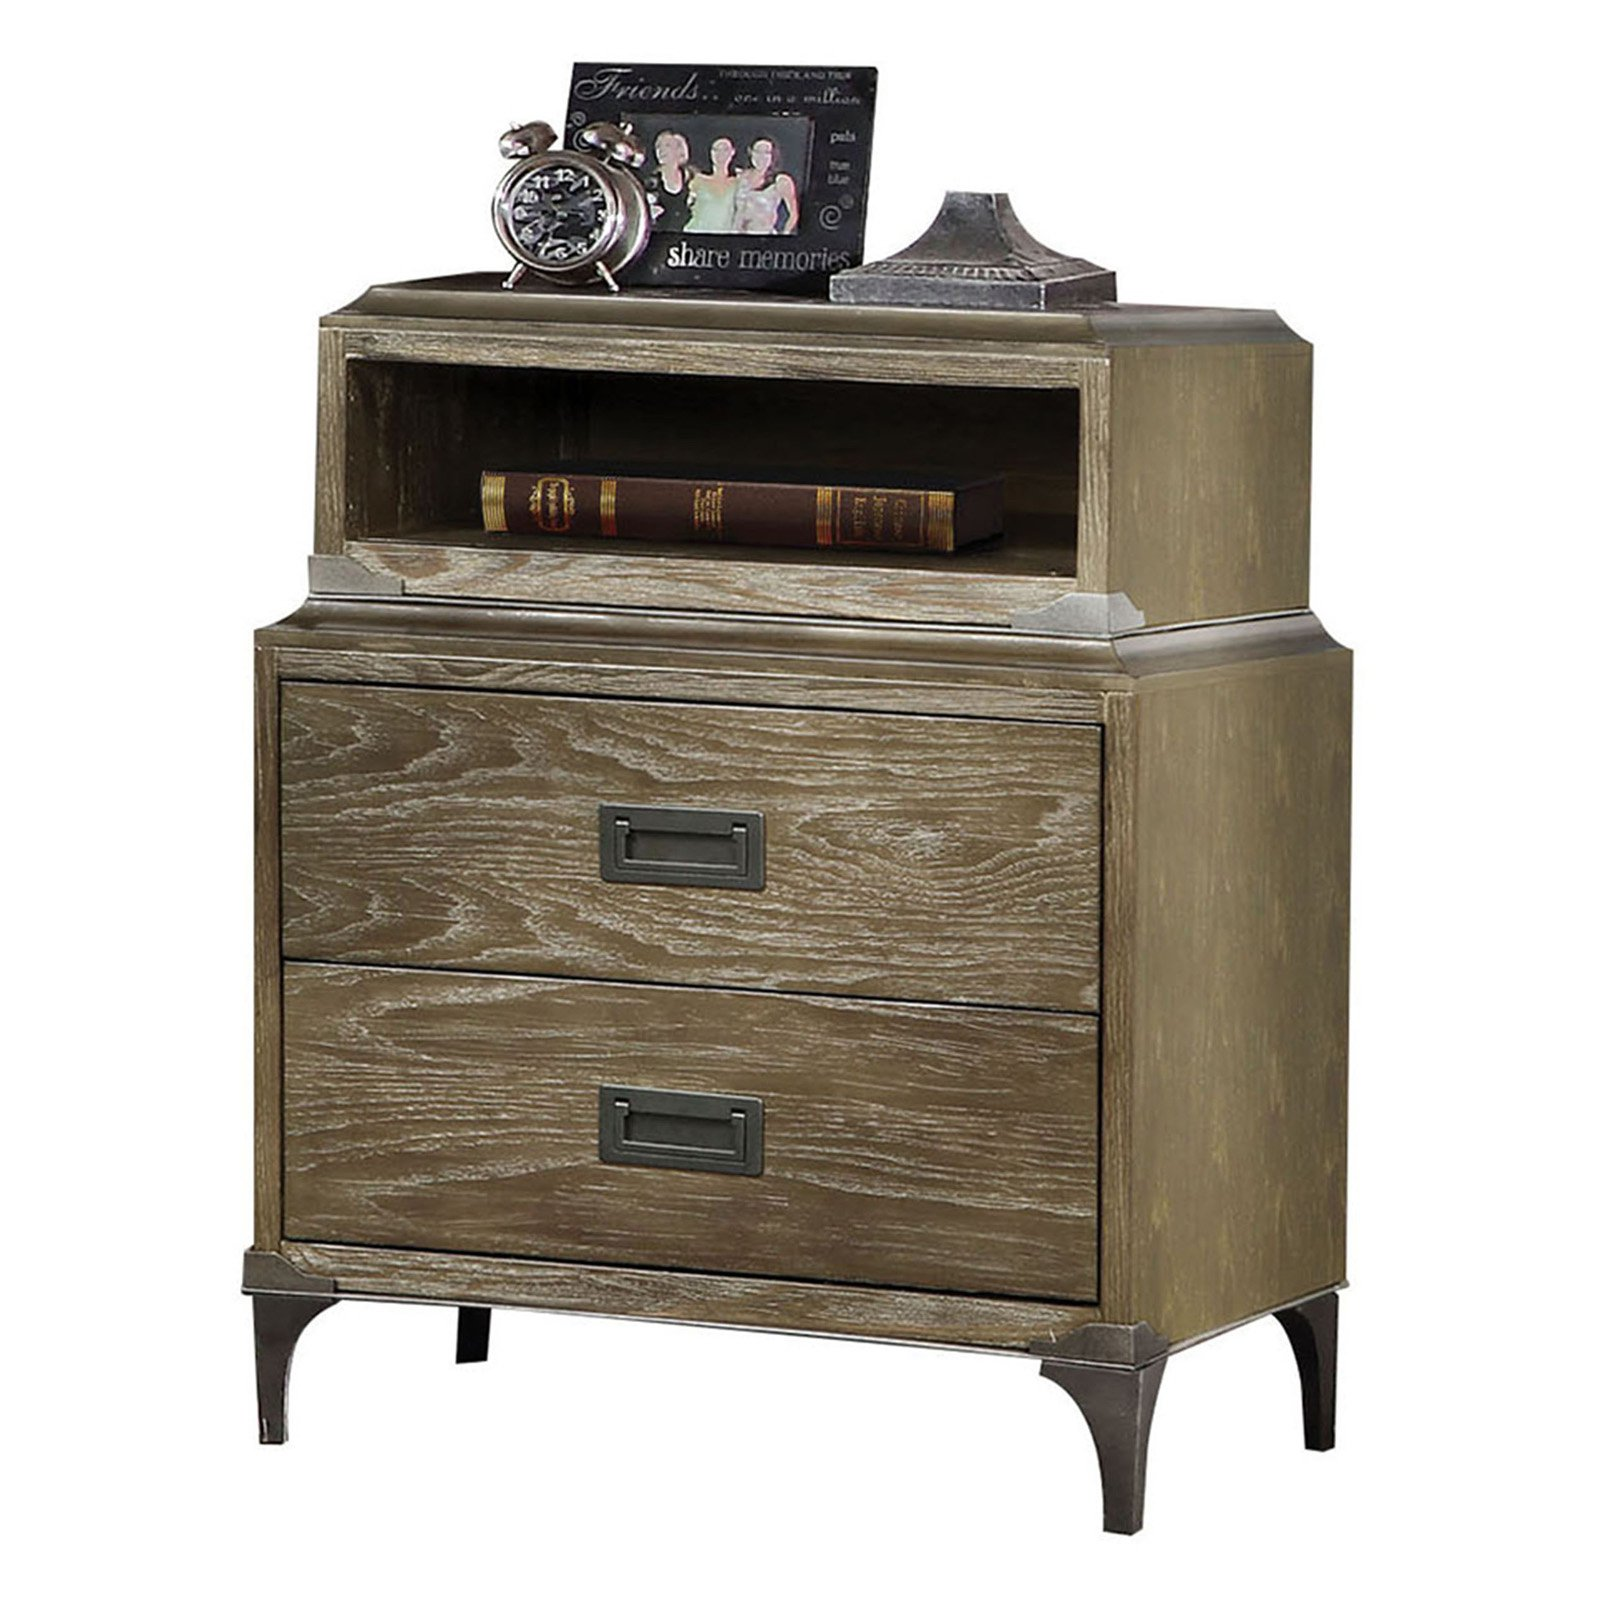 Acme Furniture Athouman Weathered Oak Nightstand with USB Power Dock